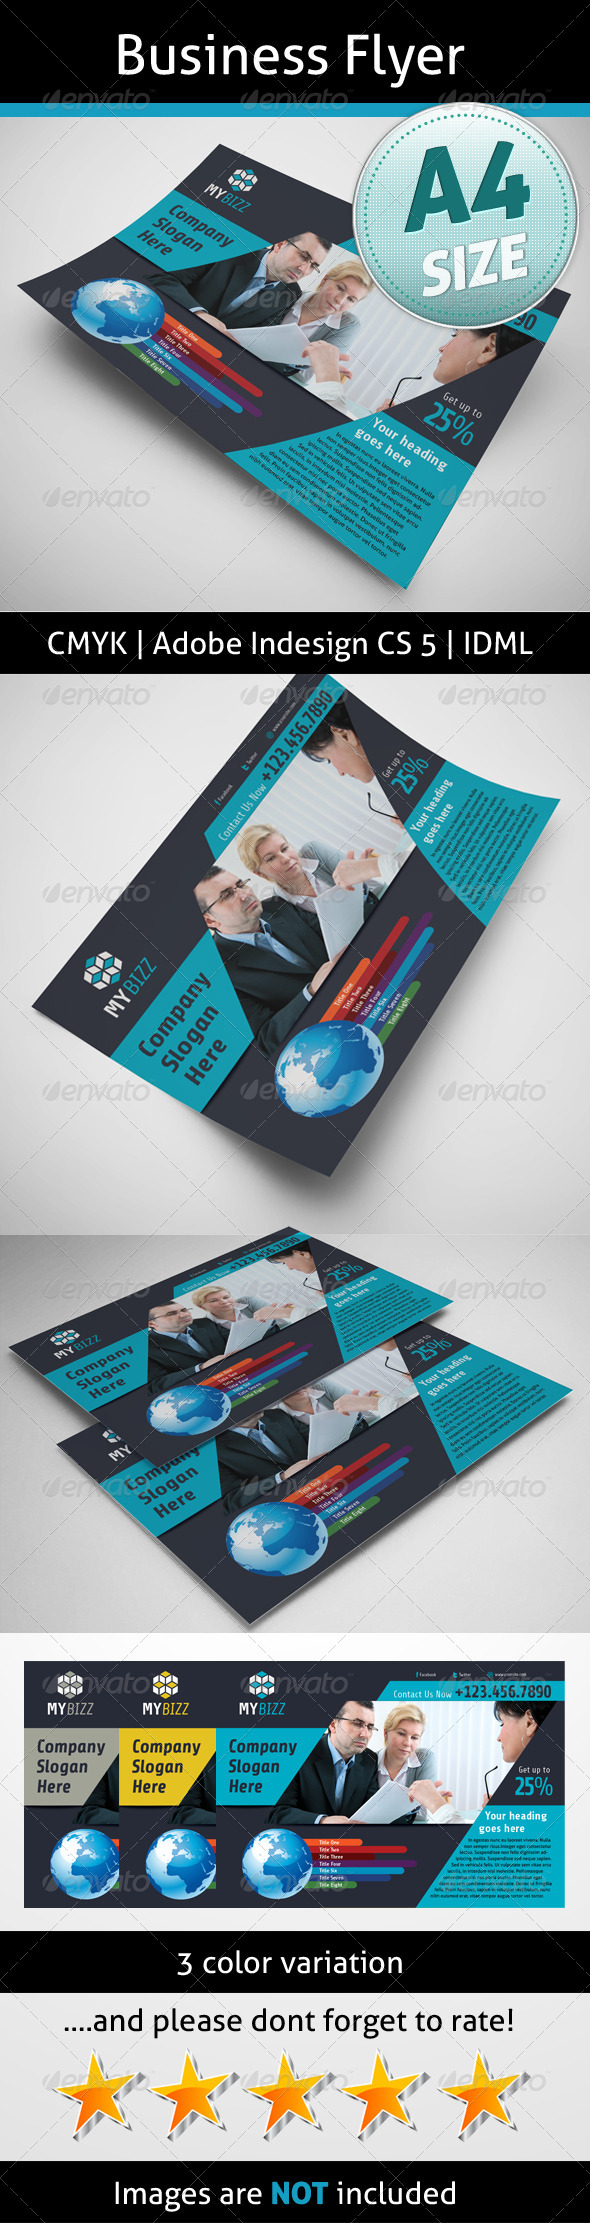 GraphicRiver Business Flyer 5237162